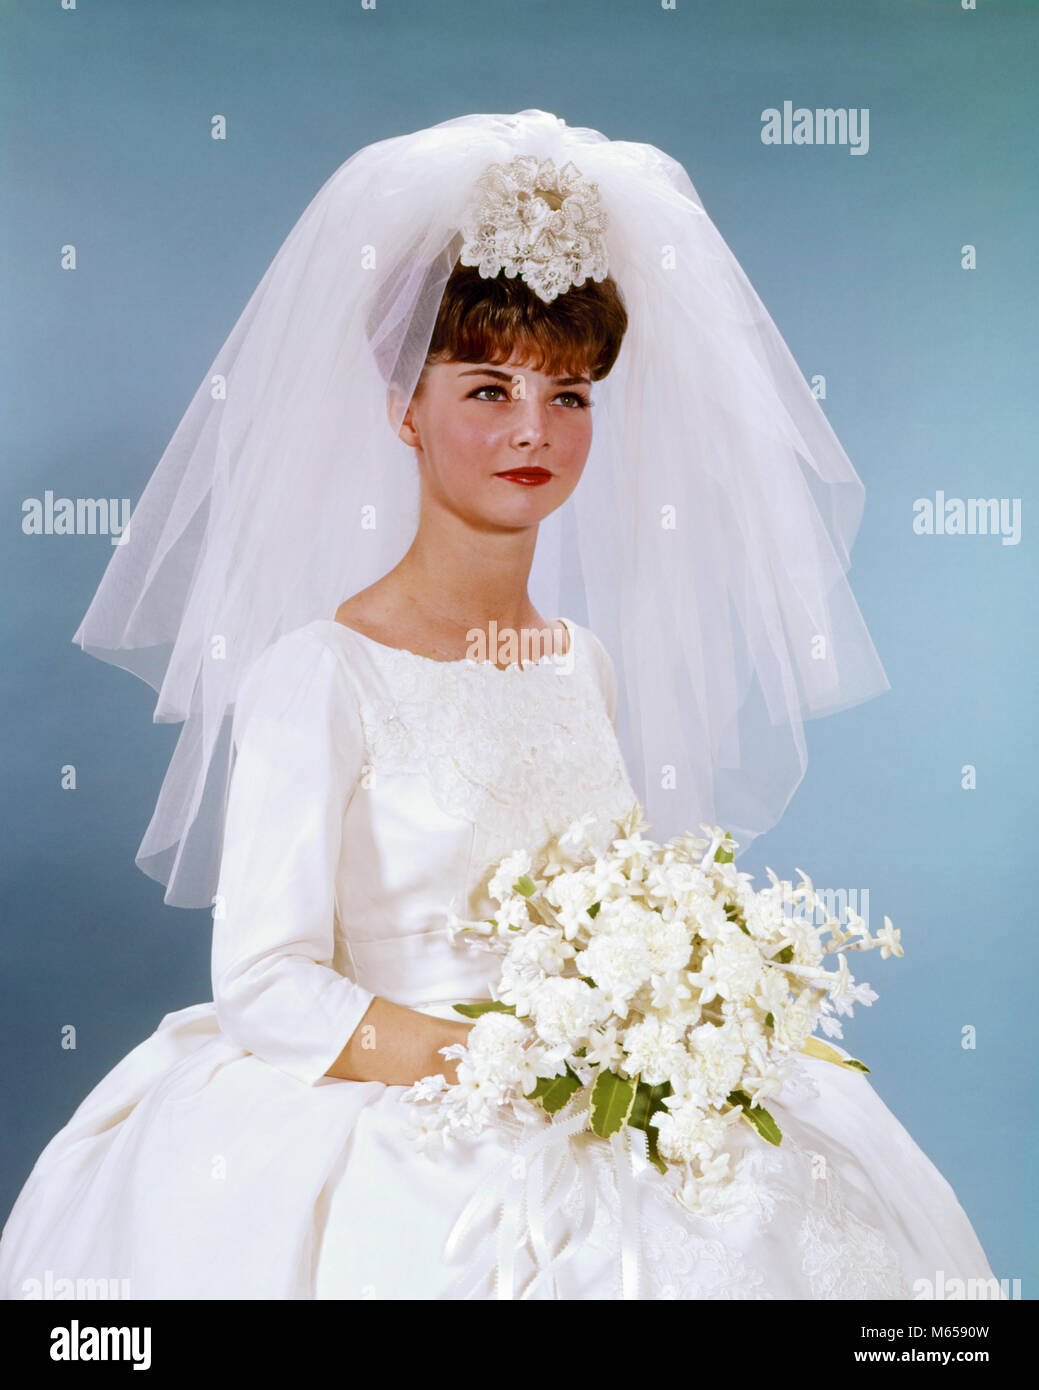 1960s PORTRAIT WOMAN BRIDE IN SIMPLE WHITE WEDDING GOWN HOLDING ...